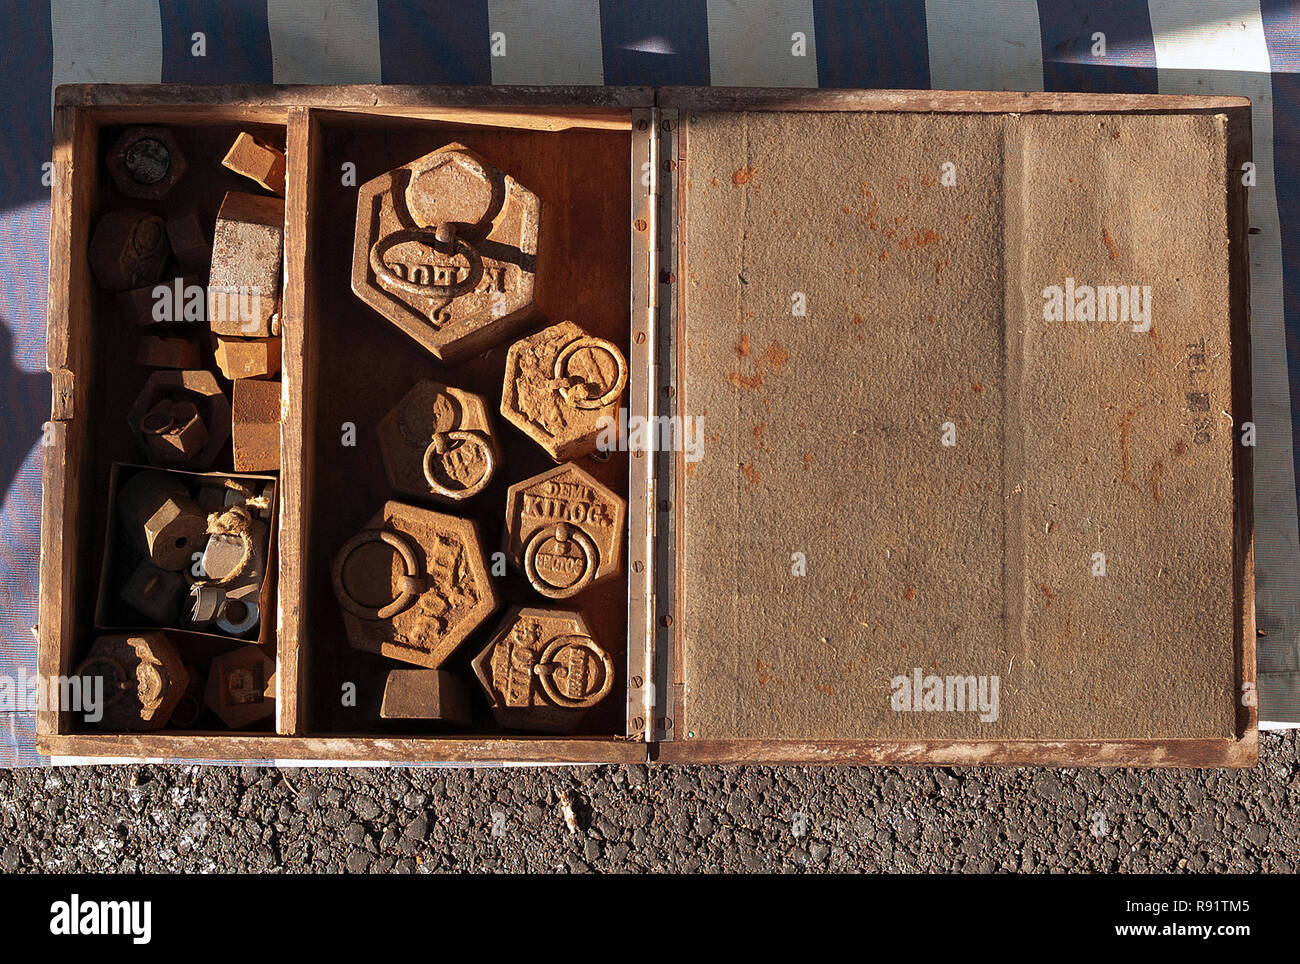 Antique weights in box at flea market, Cazals, France - Stock Image